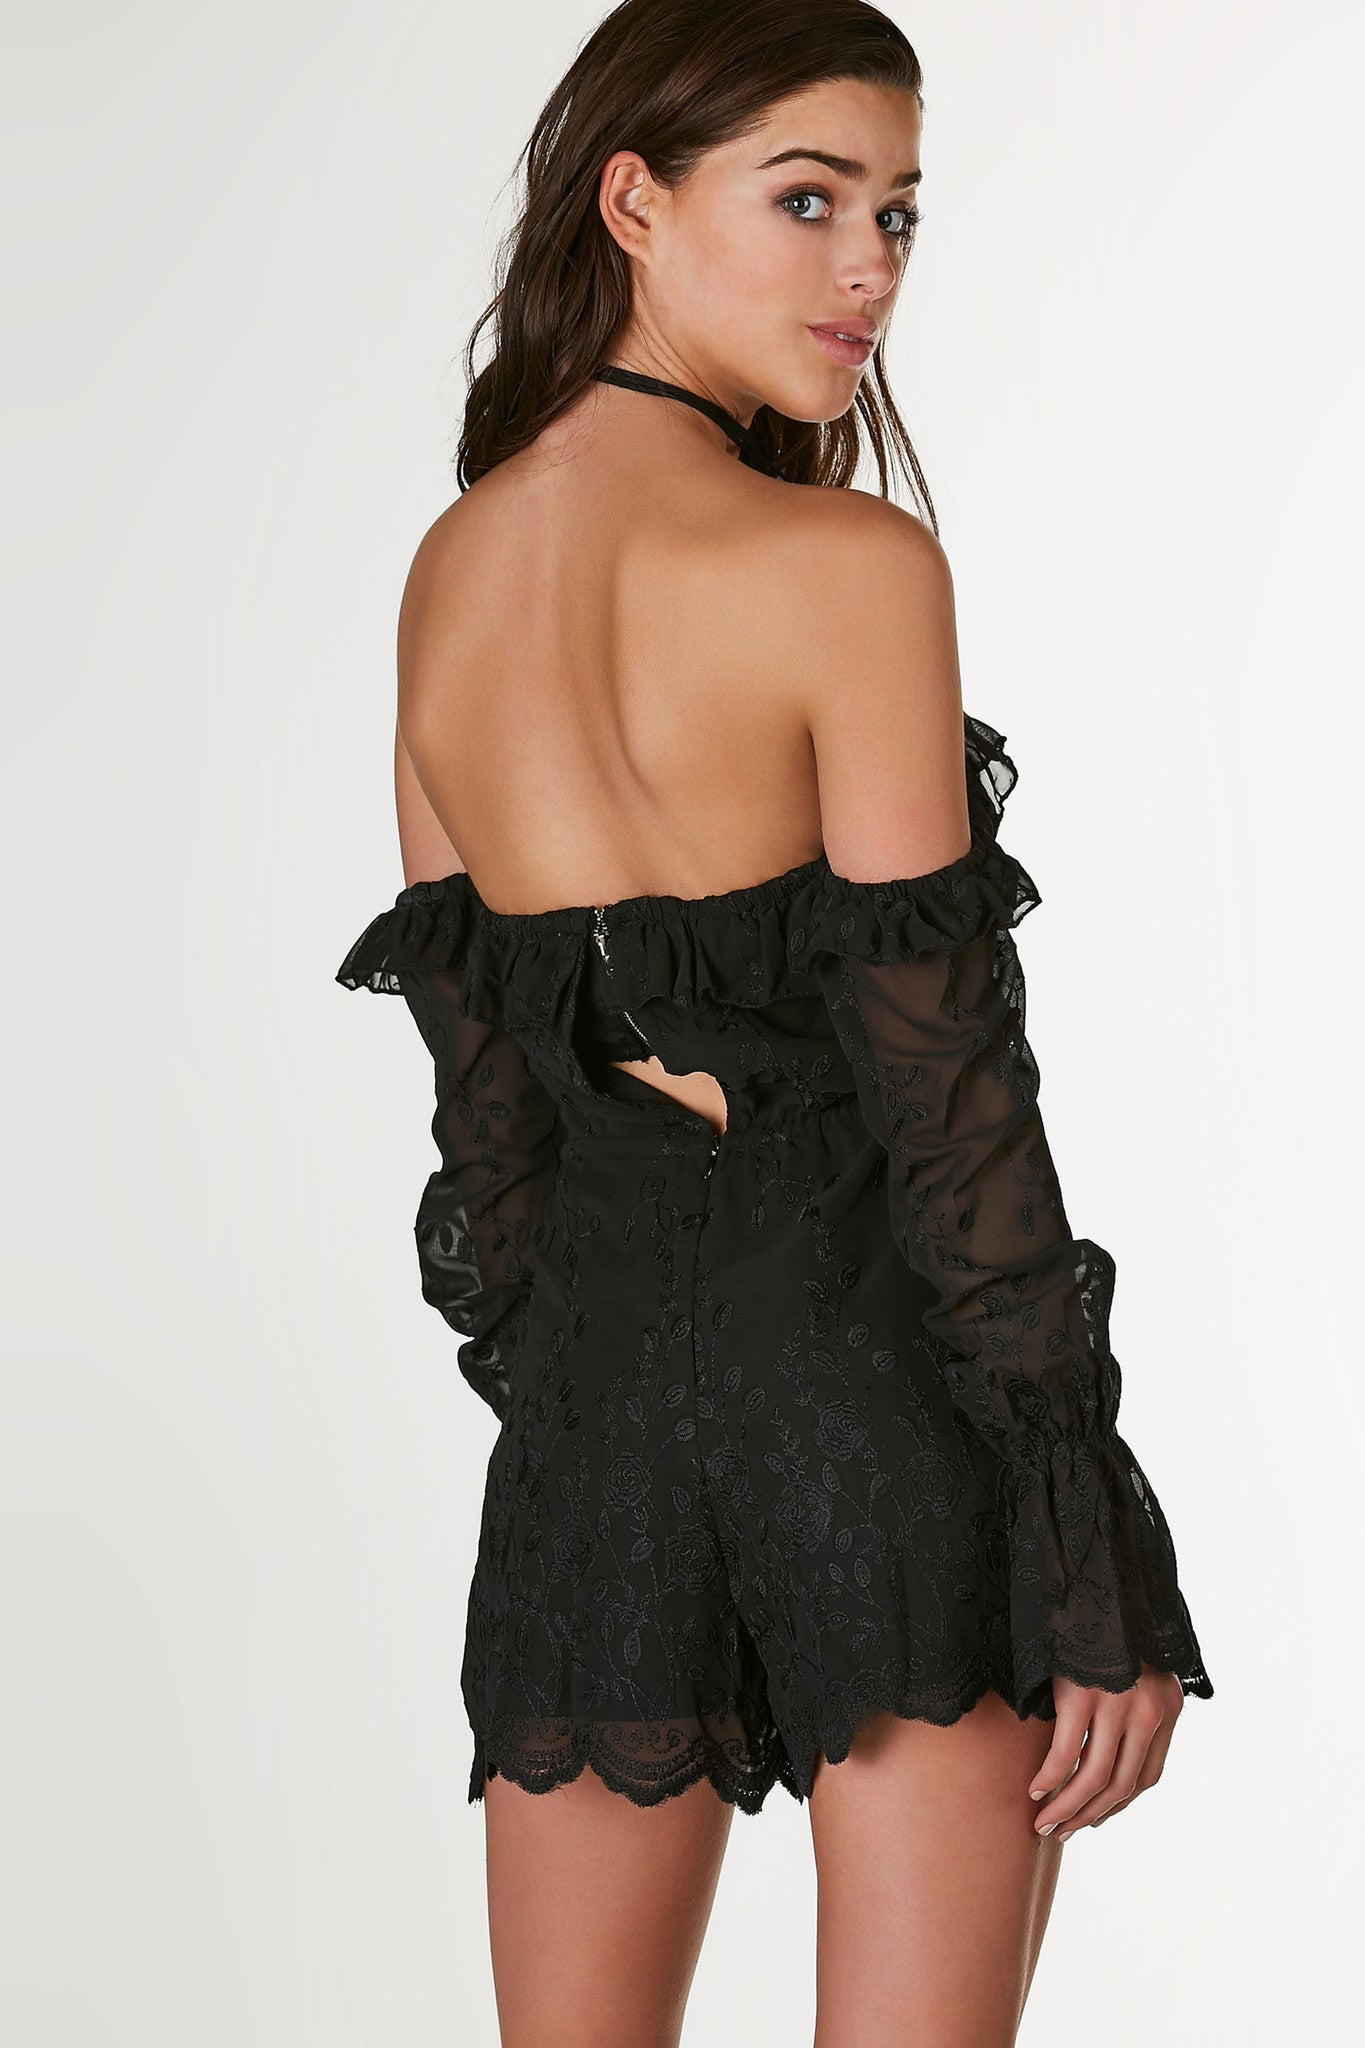 Flirty off shoulder romper with full lining and chiffon overlay. Ruffle trim detailing with floral embroidery throughout. Padded bust with drawstring at waist and back zip closure.